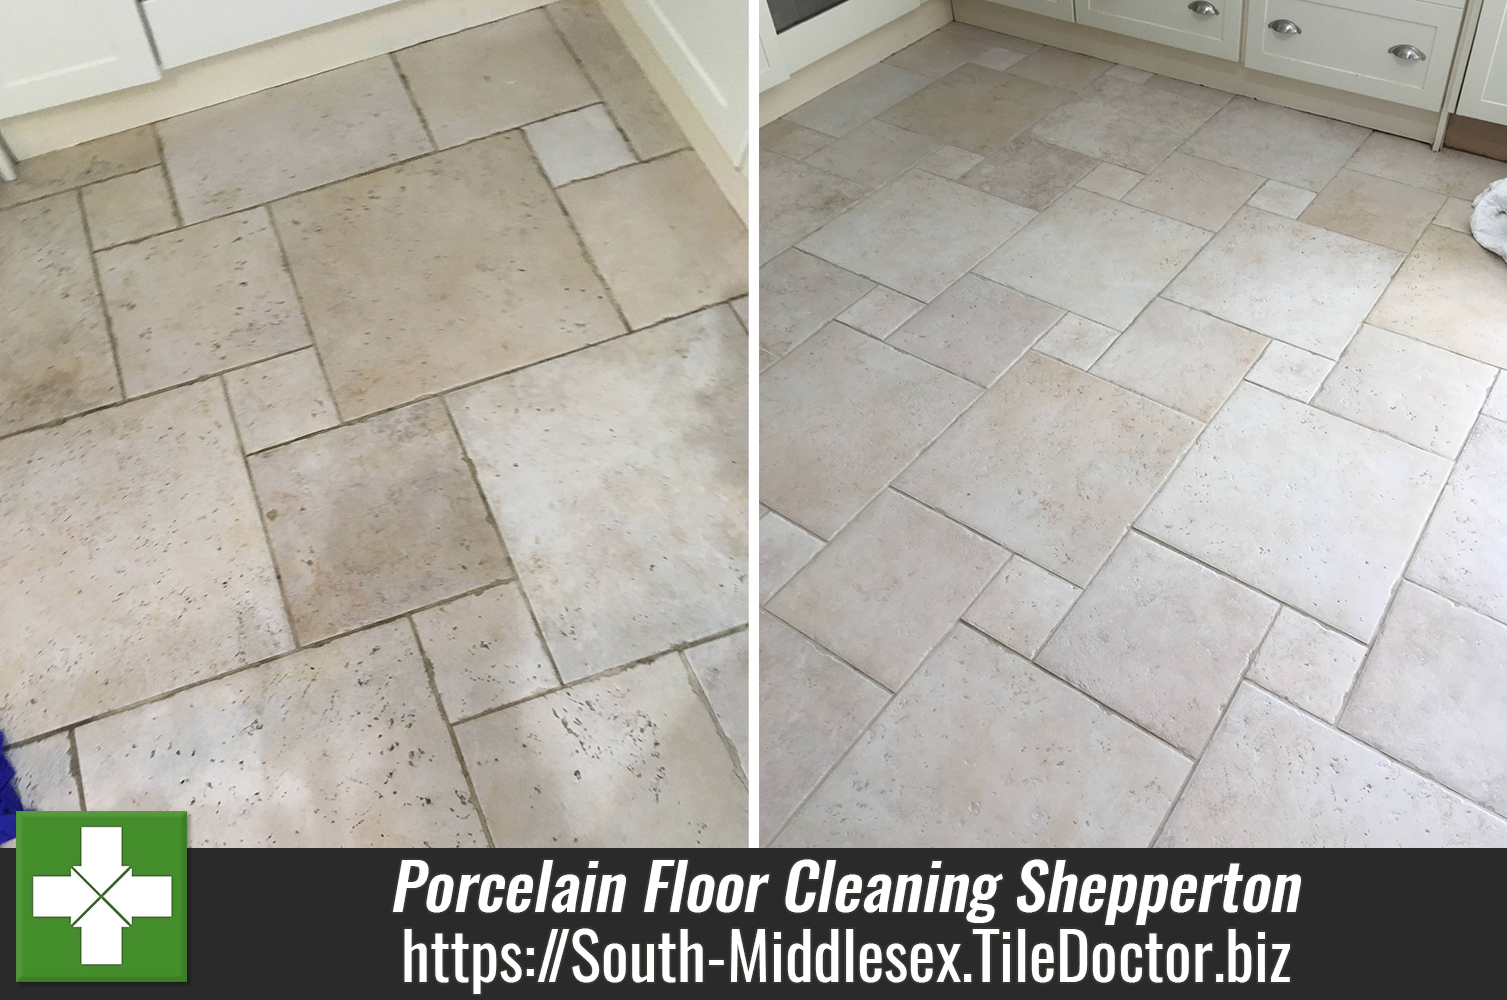 Porcelain Tile & Grout Floor Renovation in a Shepperton Kitchen